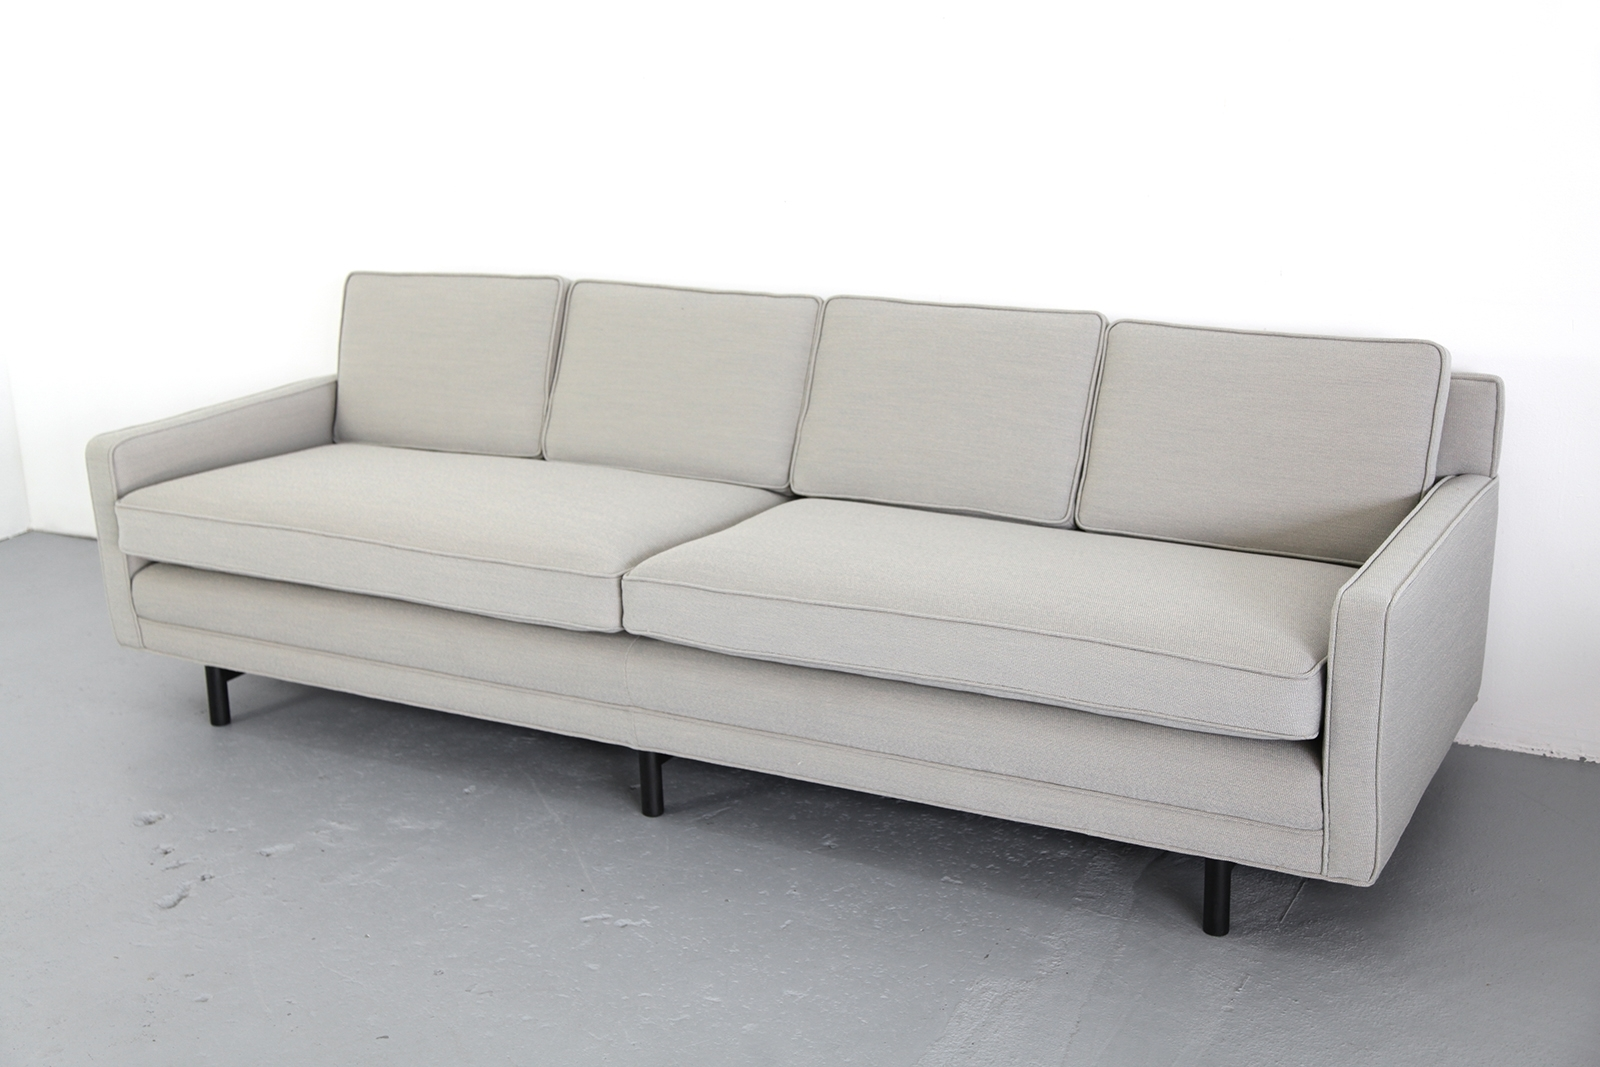 4 Seater Sofas In Most Recent 4 Seater Sofapaul Mccobb For Directional For Sale At Pamono (Gallery 2 of 15)